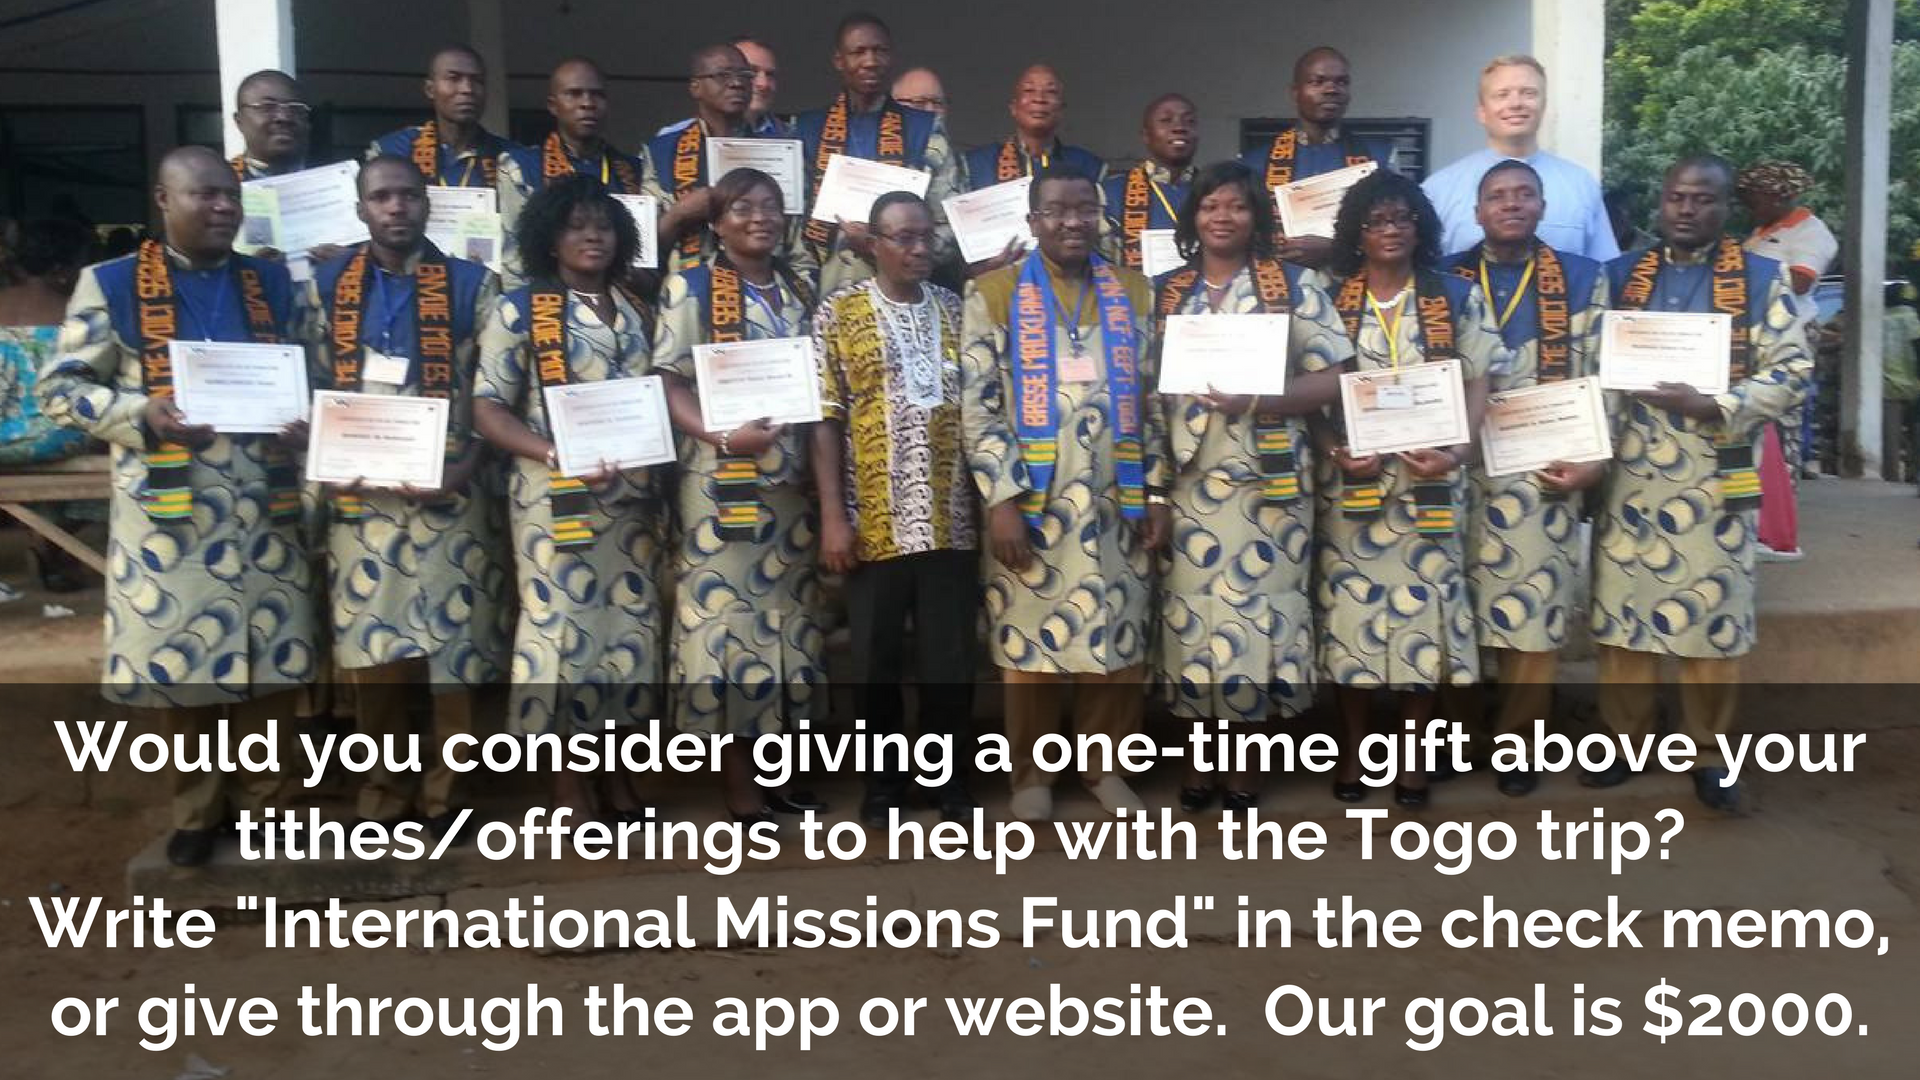 """To give towards the Togo Partnership, go to  PUSHPAY  and designate the fund to """"INTERNATIONAL MISSIONS FUND"""". Thank you."""